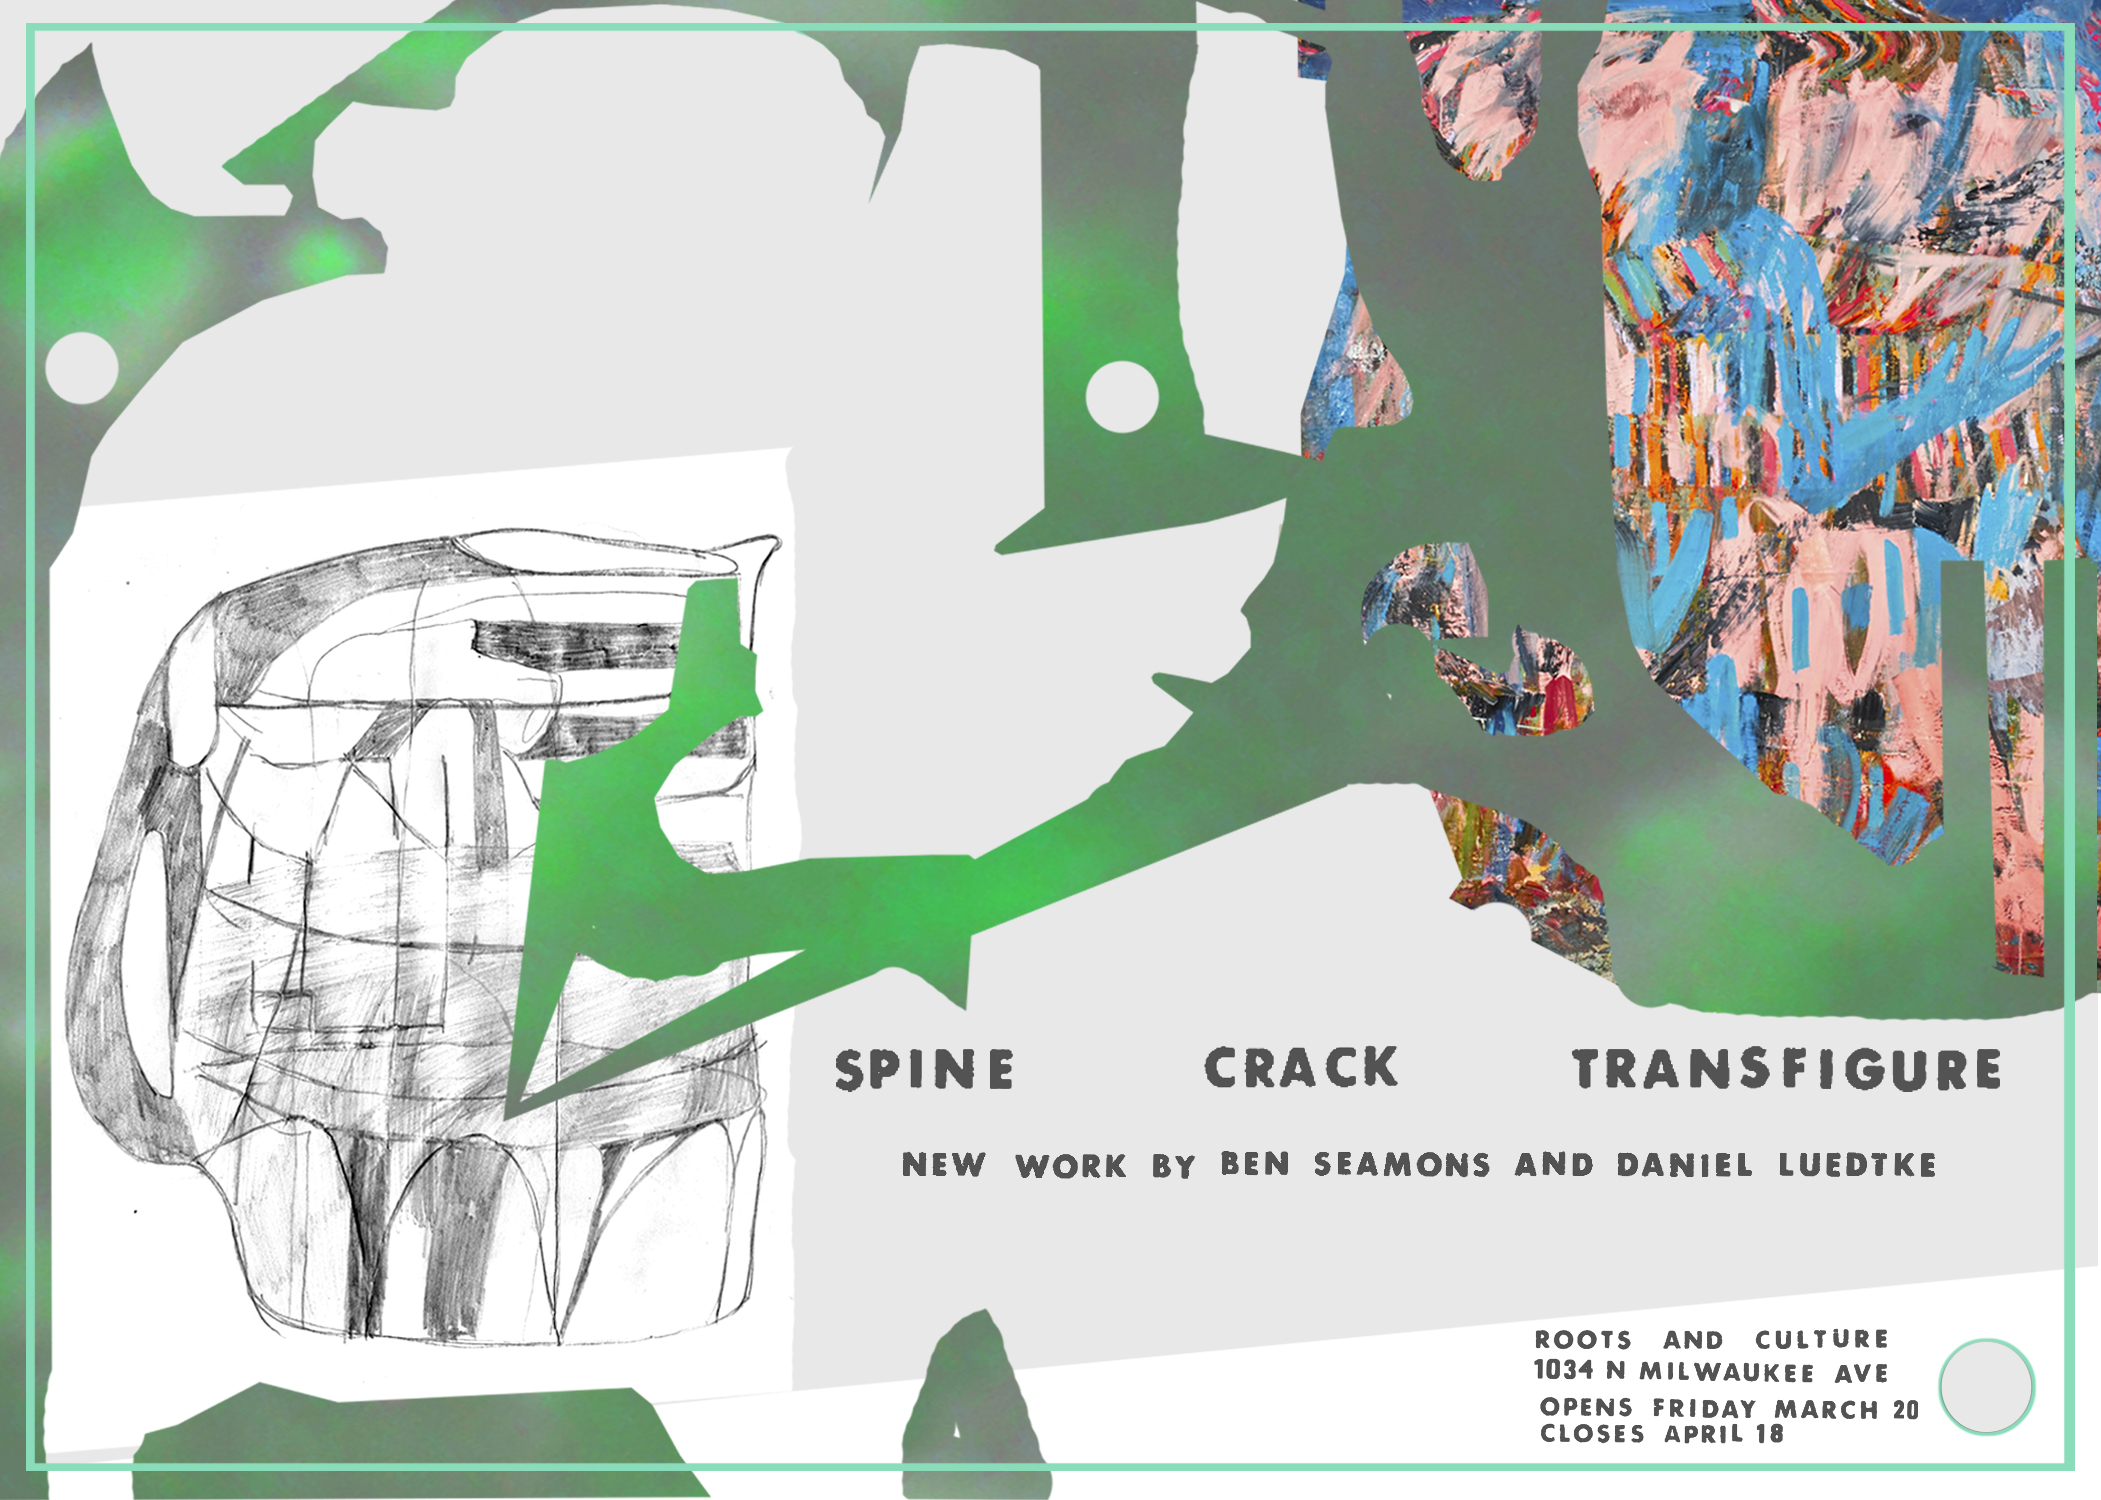 Spine, Crack, Transfigure – Daniel Luedtke and Ben Seamons